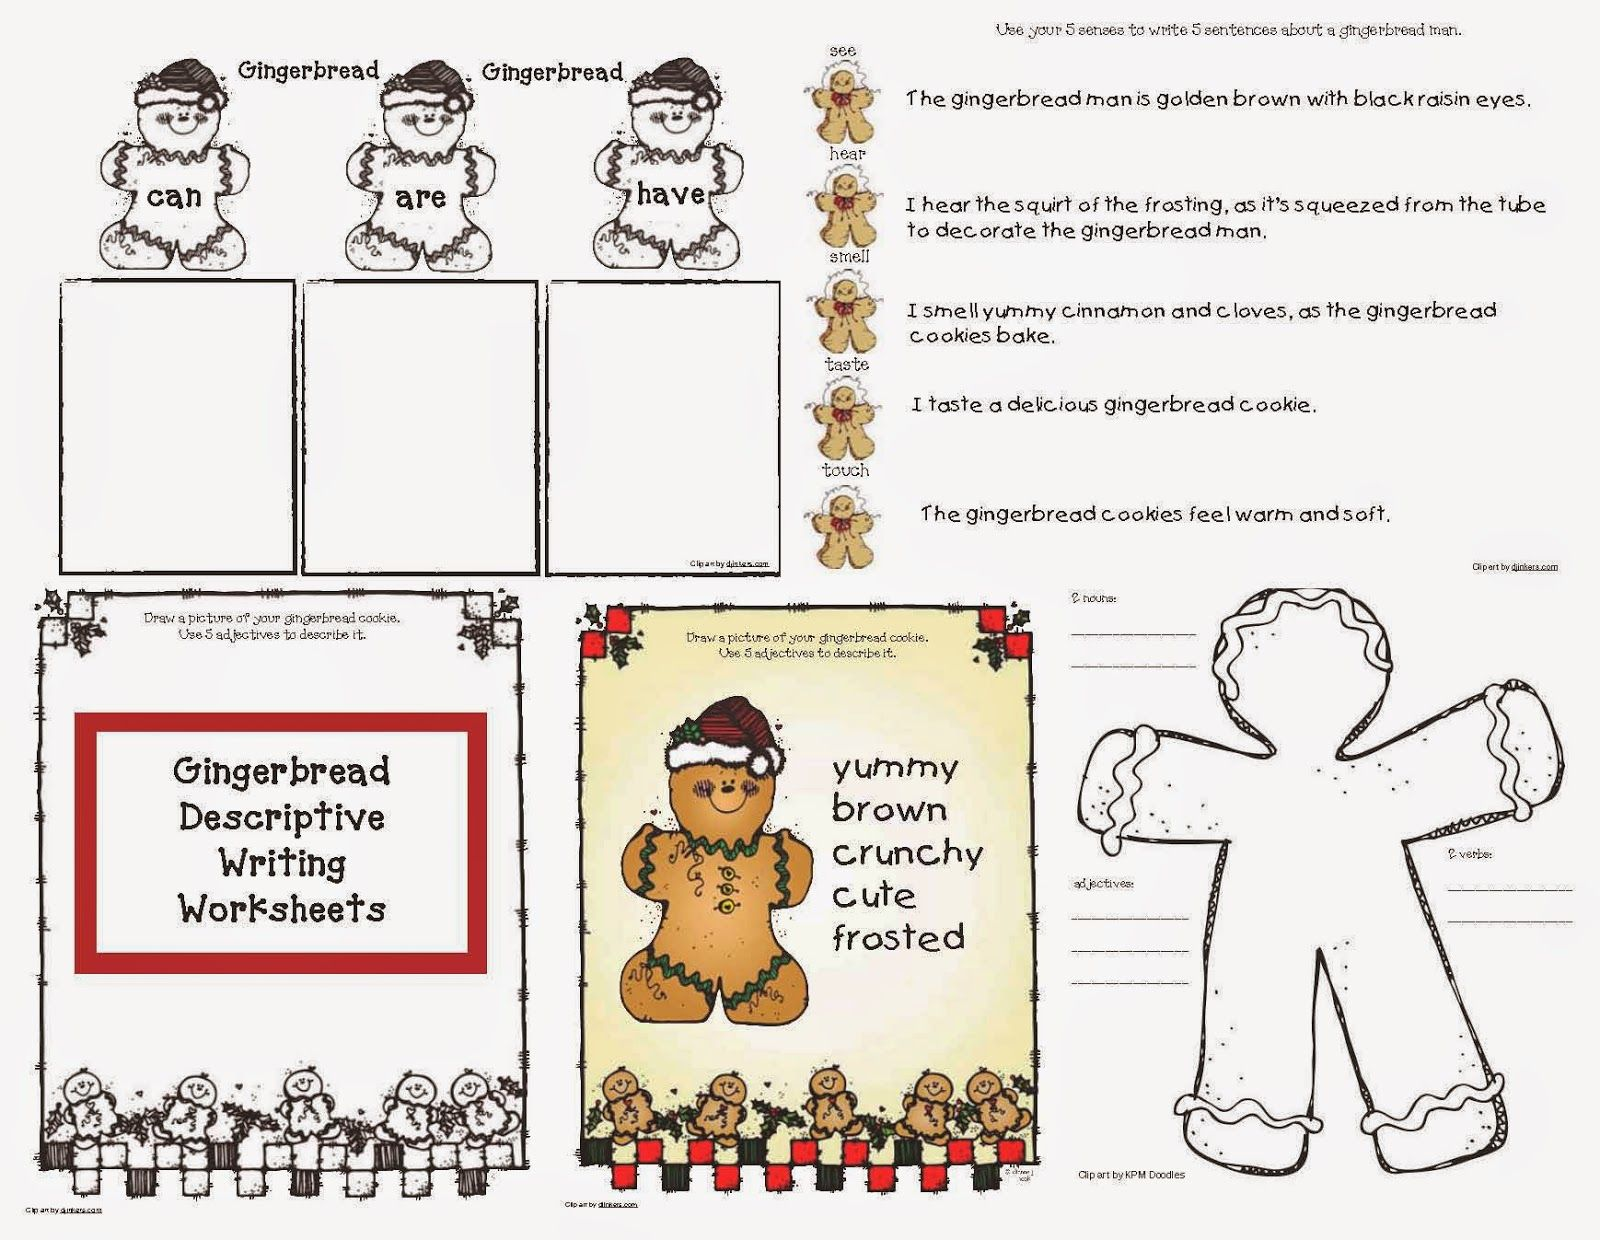 hight resolution of 8 Best Worksheets Descriptive Writing images on Best Worksheets Collection